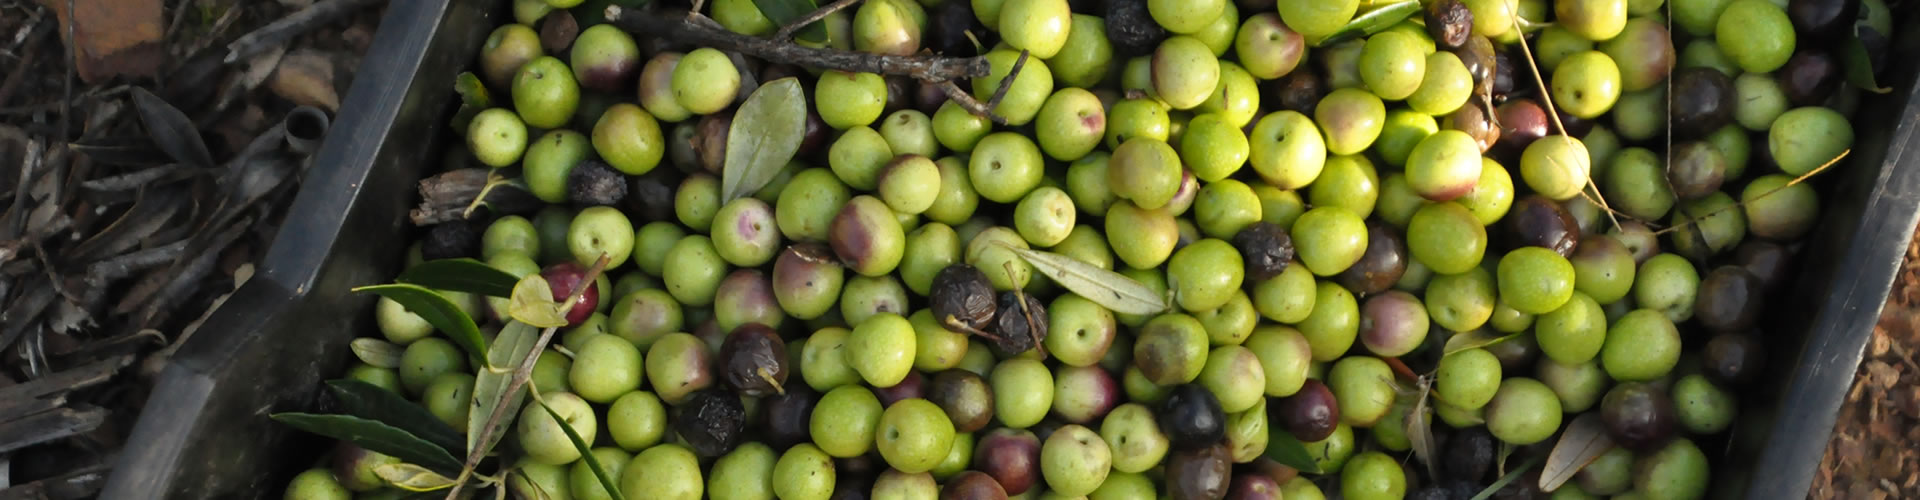 south-africa-olive-oil-5